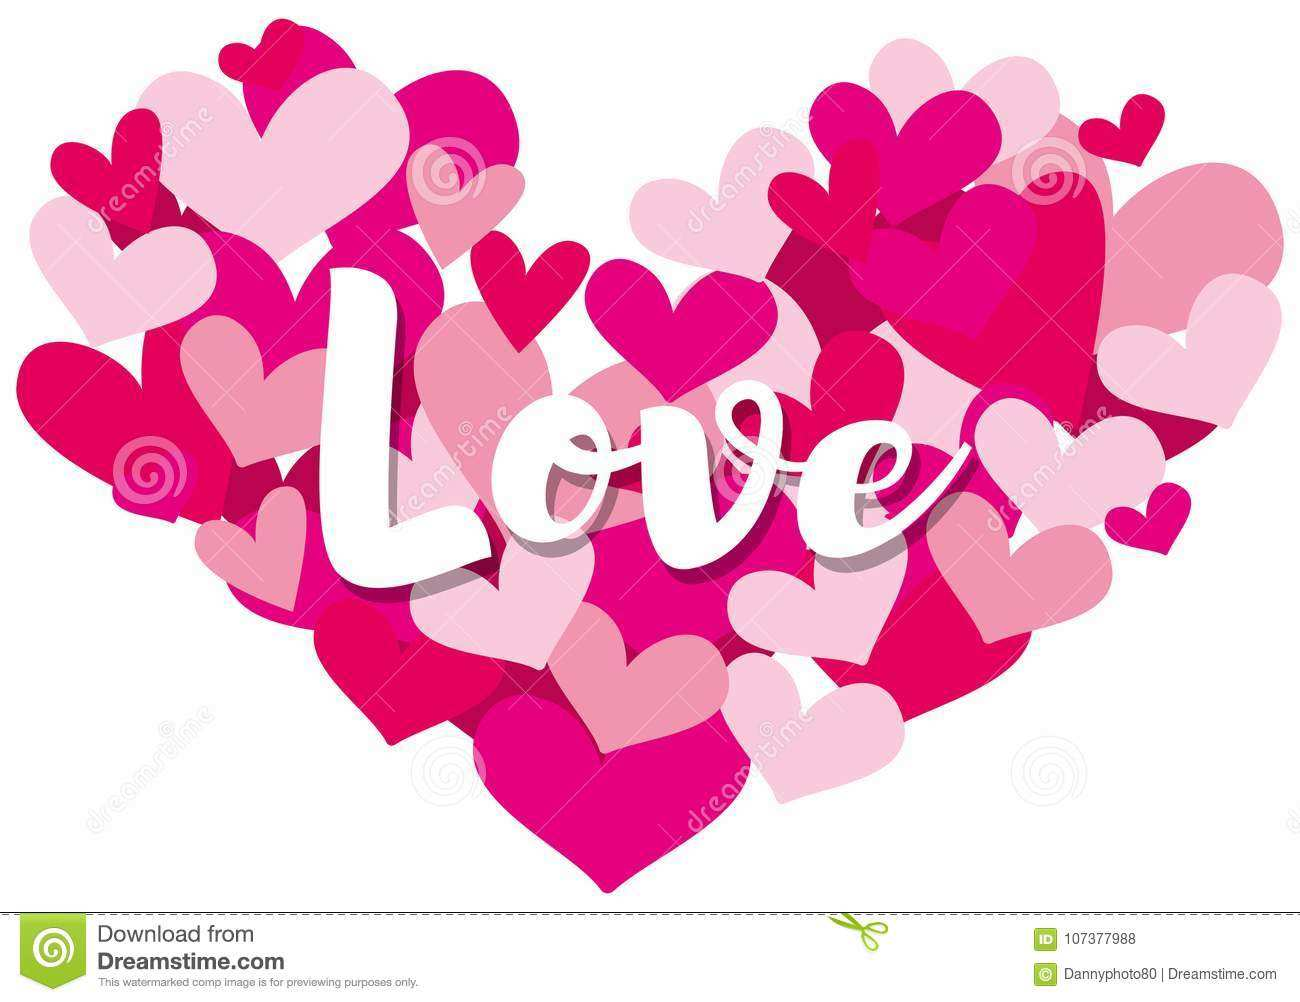 86 Blank Heart Card Templates Word in Word for Heart Card Templates Word